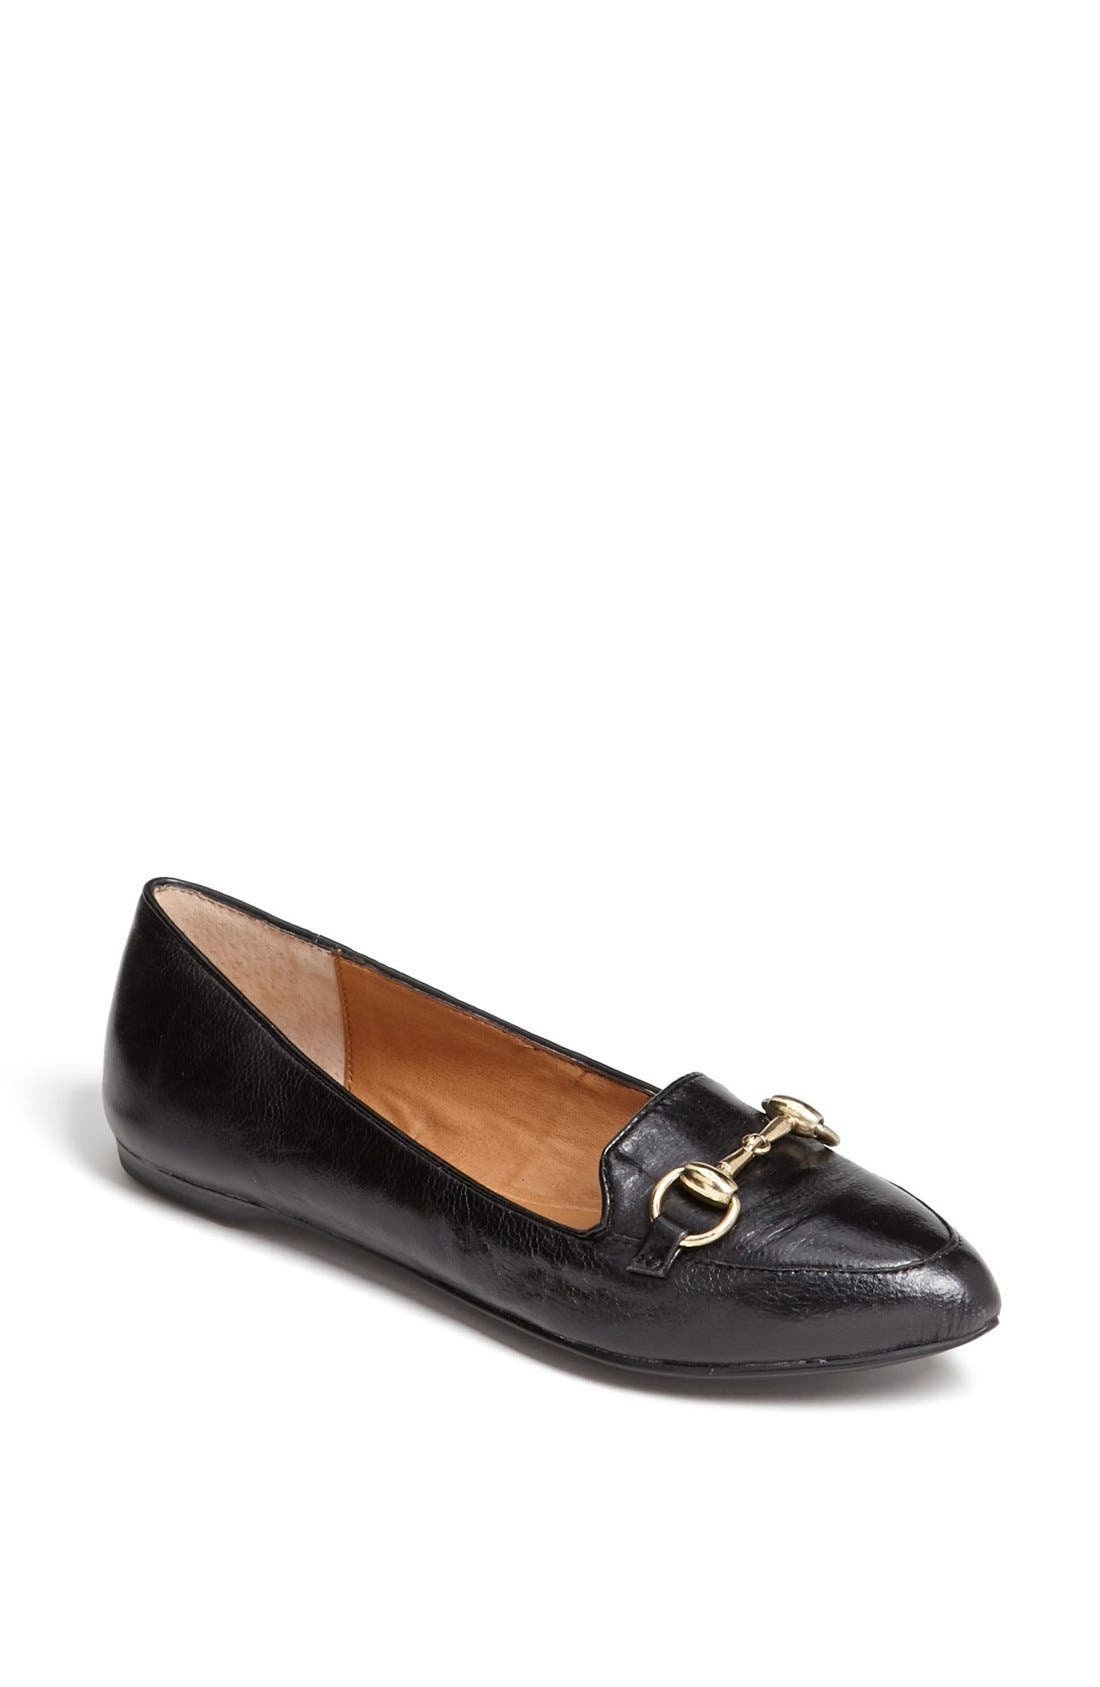 DV BY DOLCE VITA 'Langely' Flat, Main, color, 001